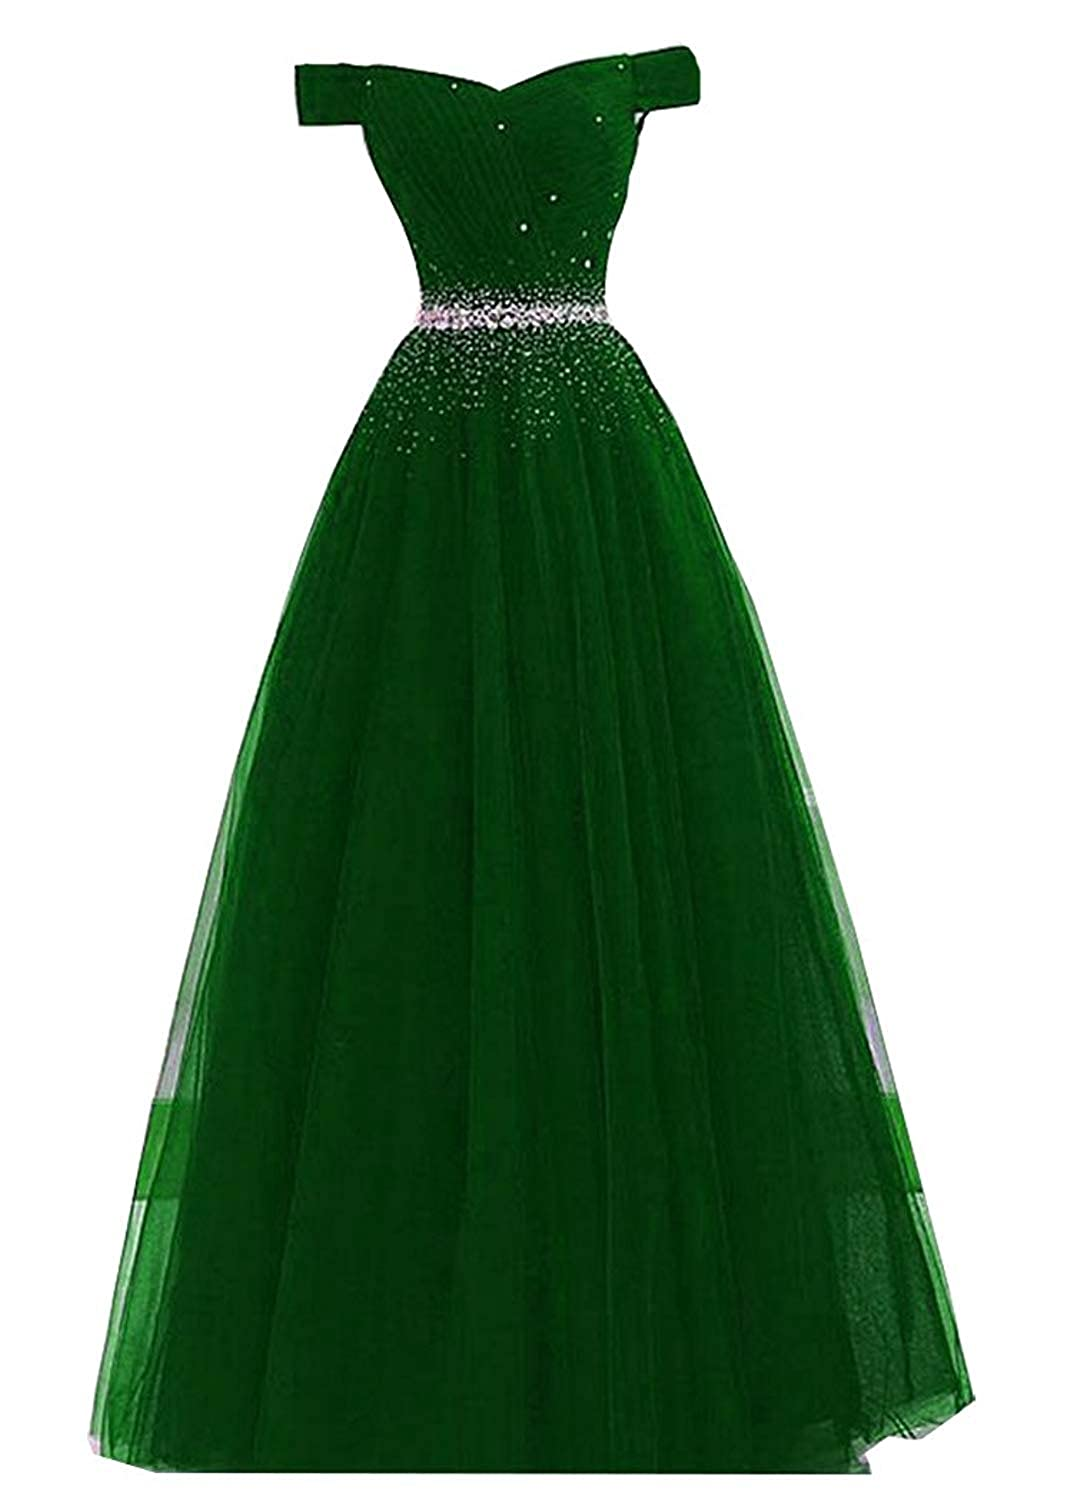 Green 20KyleBird Women's Off The Shoulder Prom Dresses Long 2018 Beaded Tulle Laceup Evening Party Formal Gowns KB022